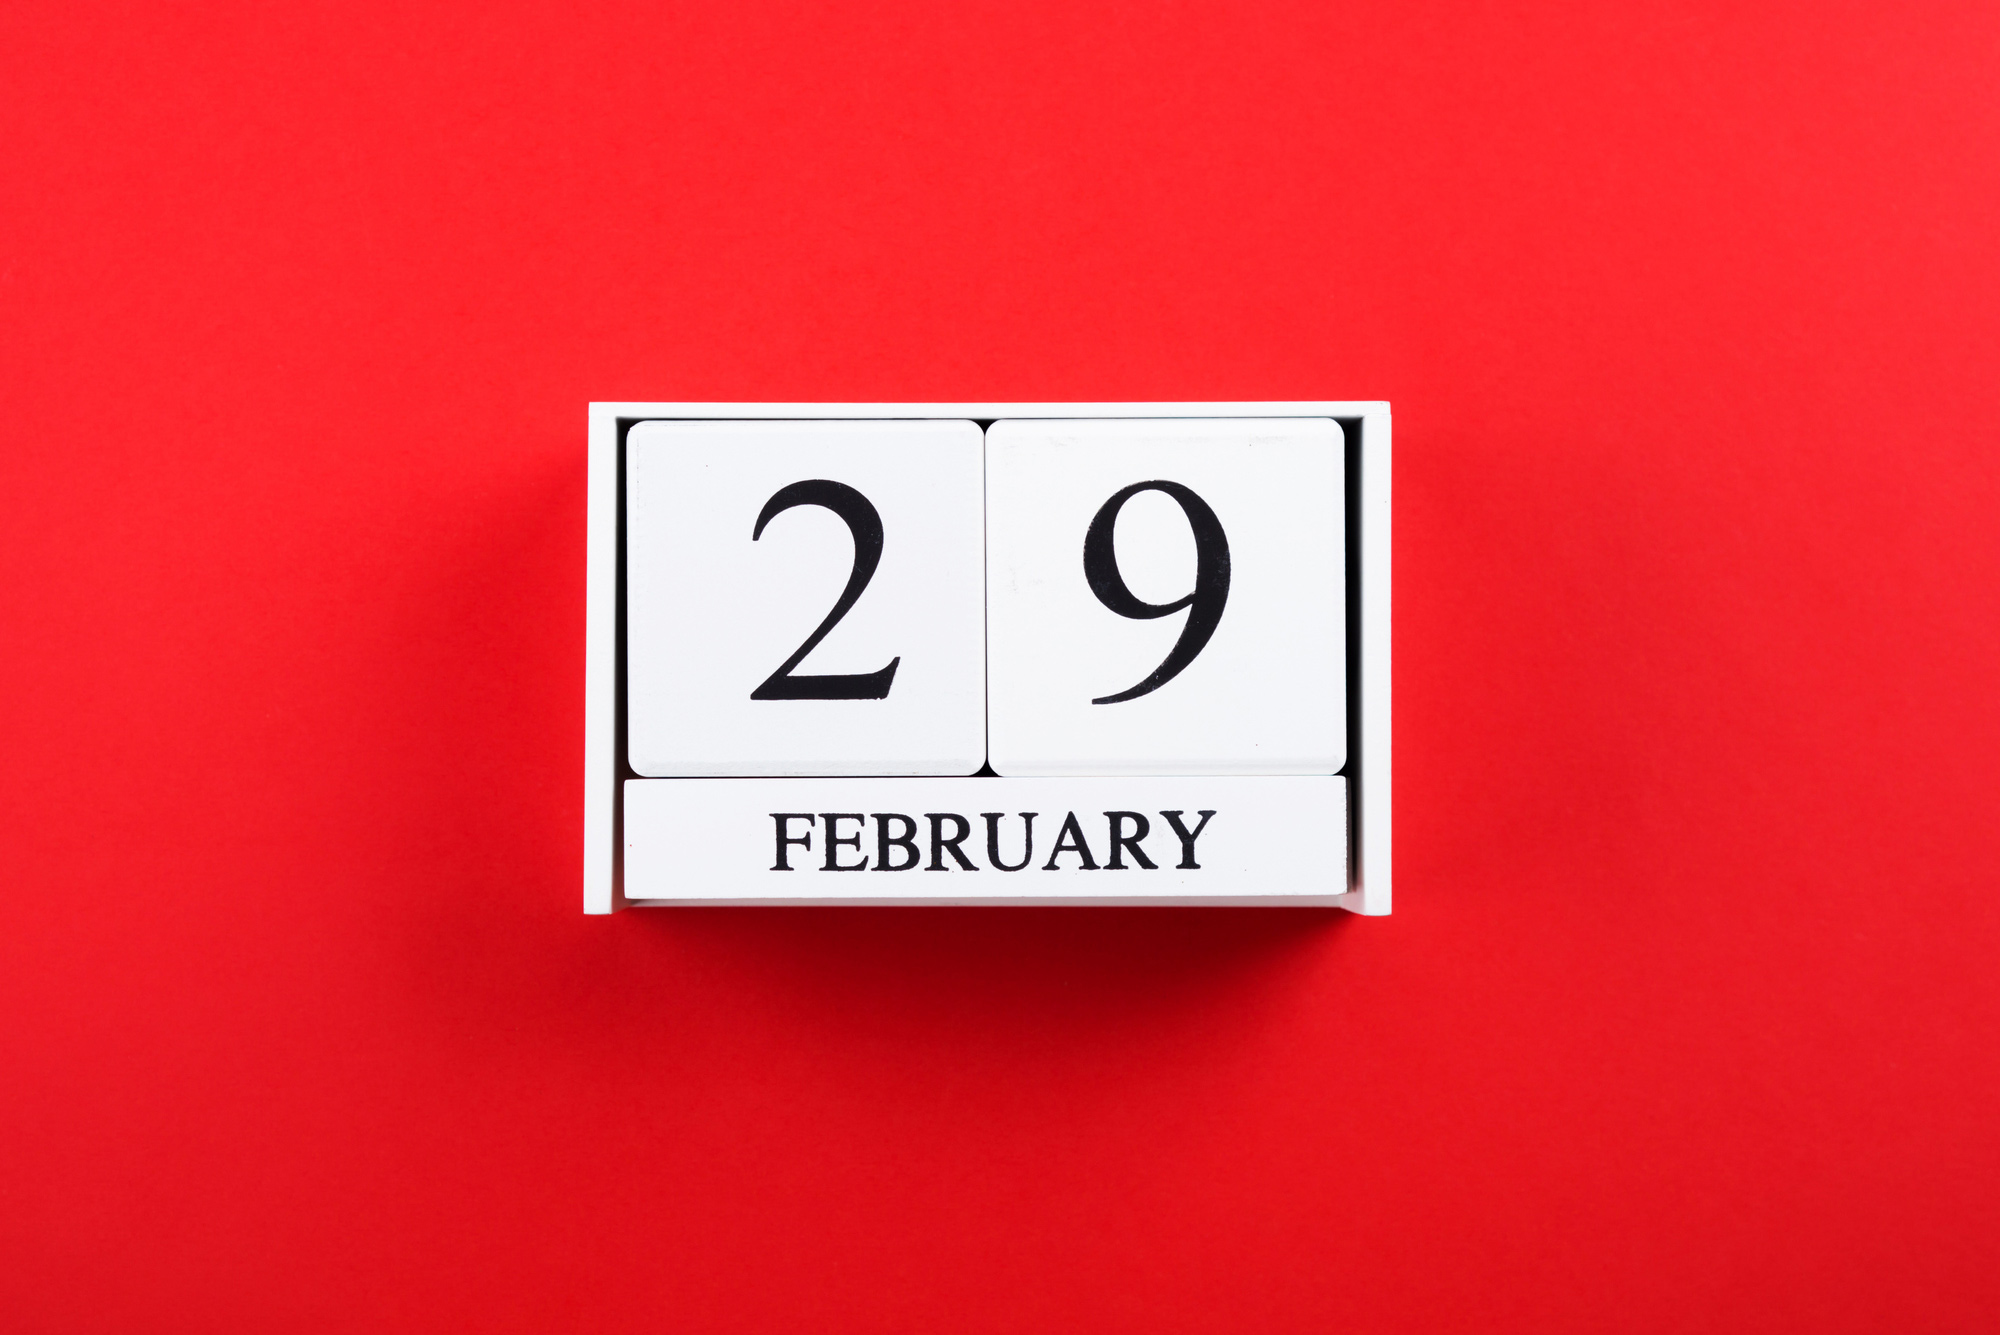 Image of white blocks on a bright red background; blocks say February 29.